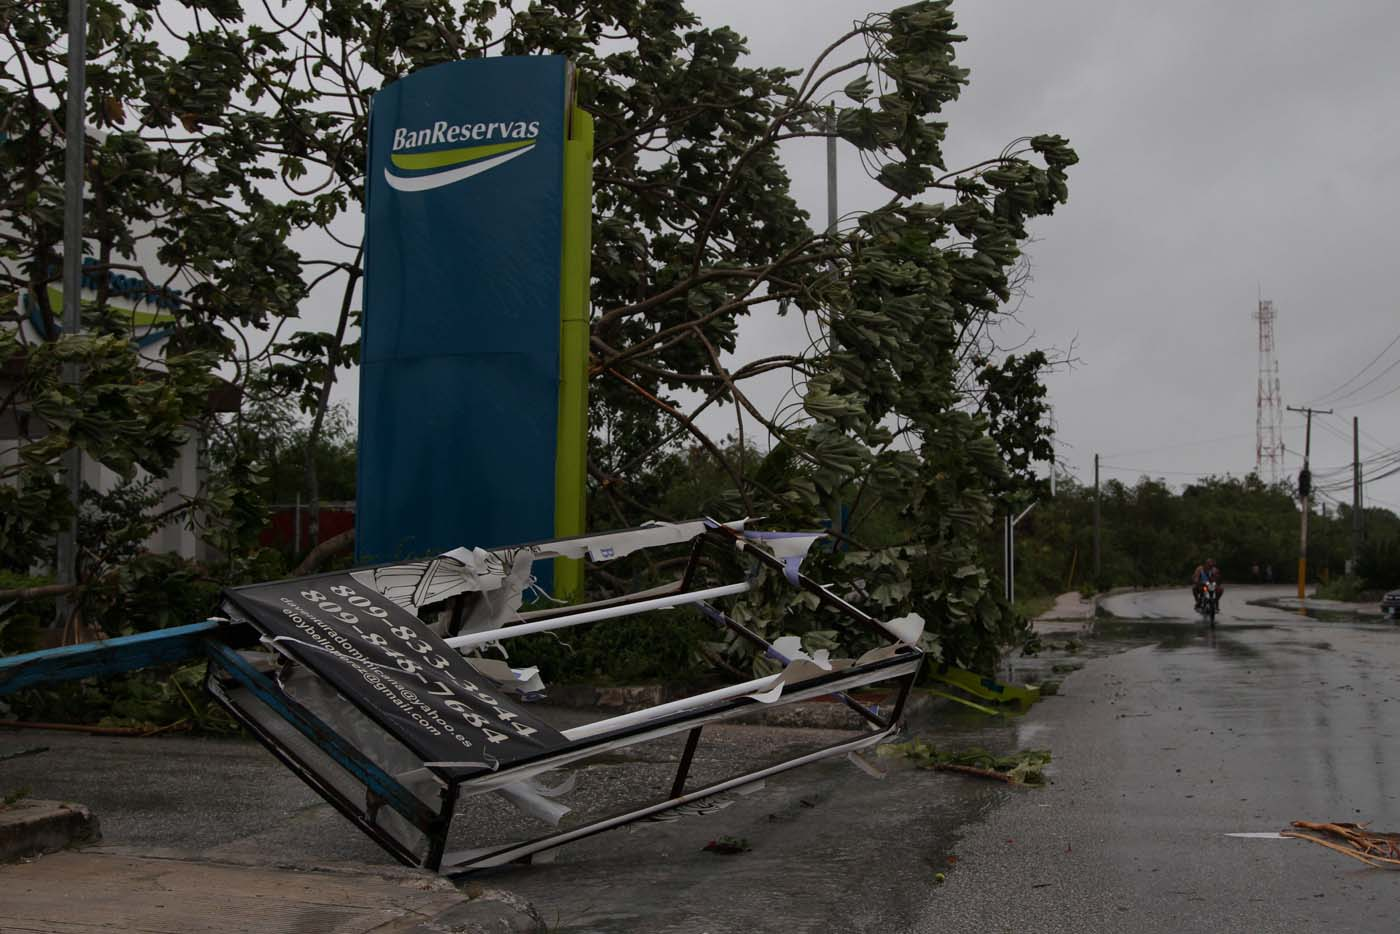 A man rides a motorbike on the street before the arrival of the Hurricane Maria in Punta Cana, Dominican Republic, September 20, 2017. REUTERS/Ricardo Rojas